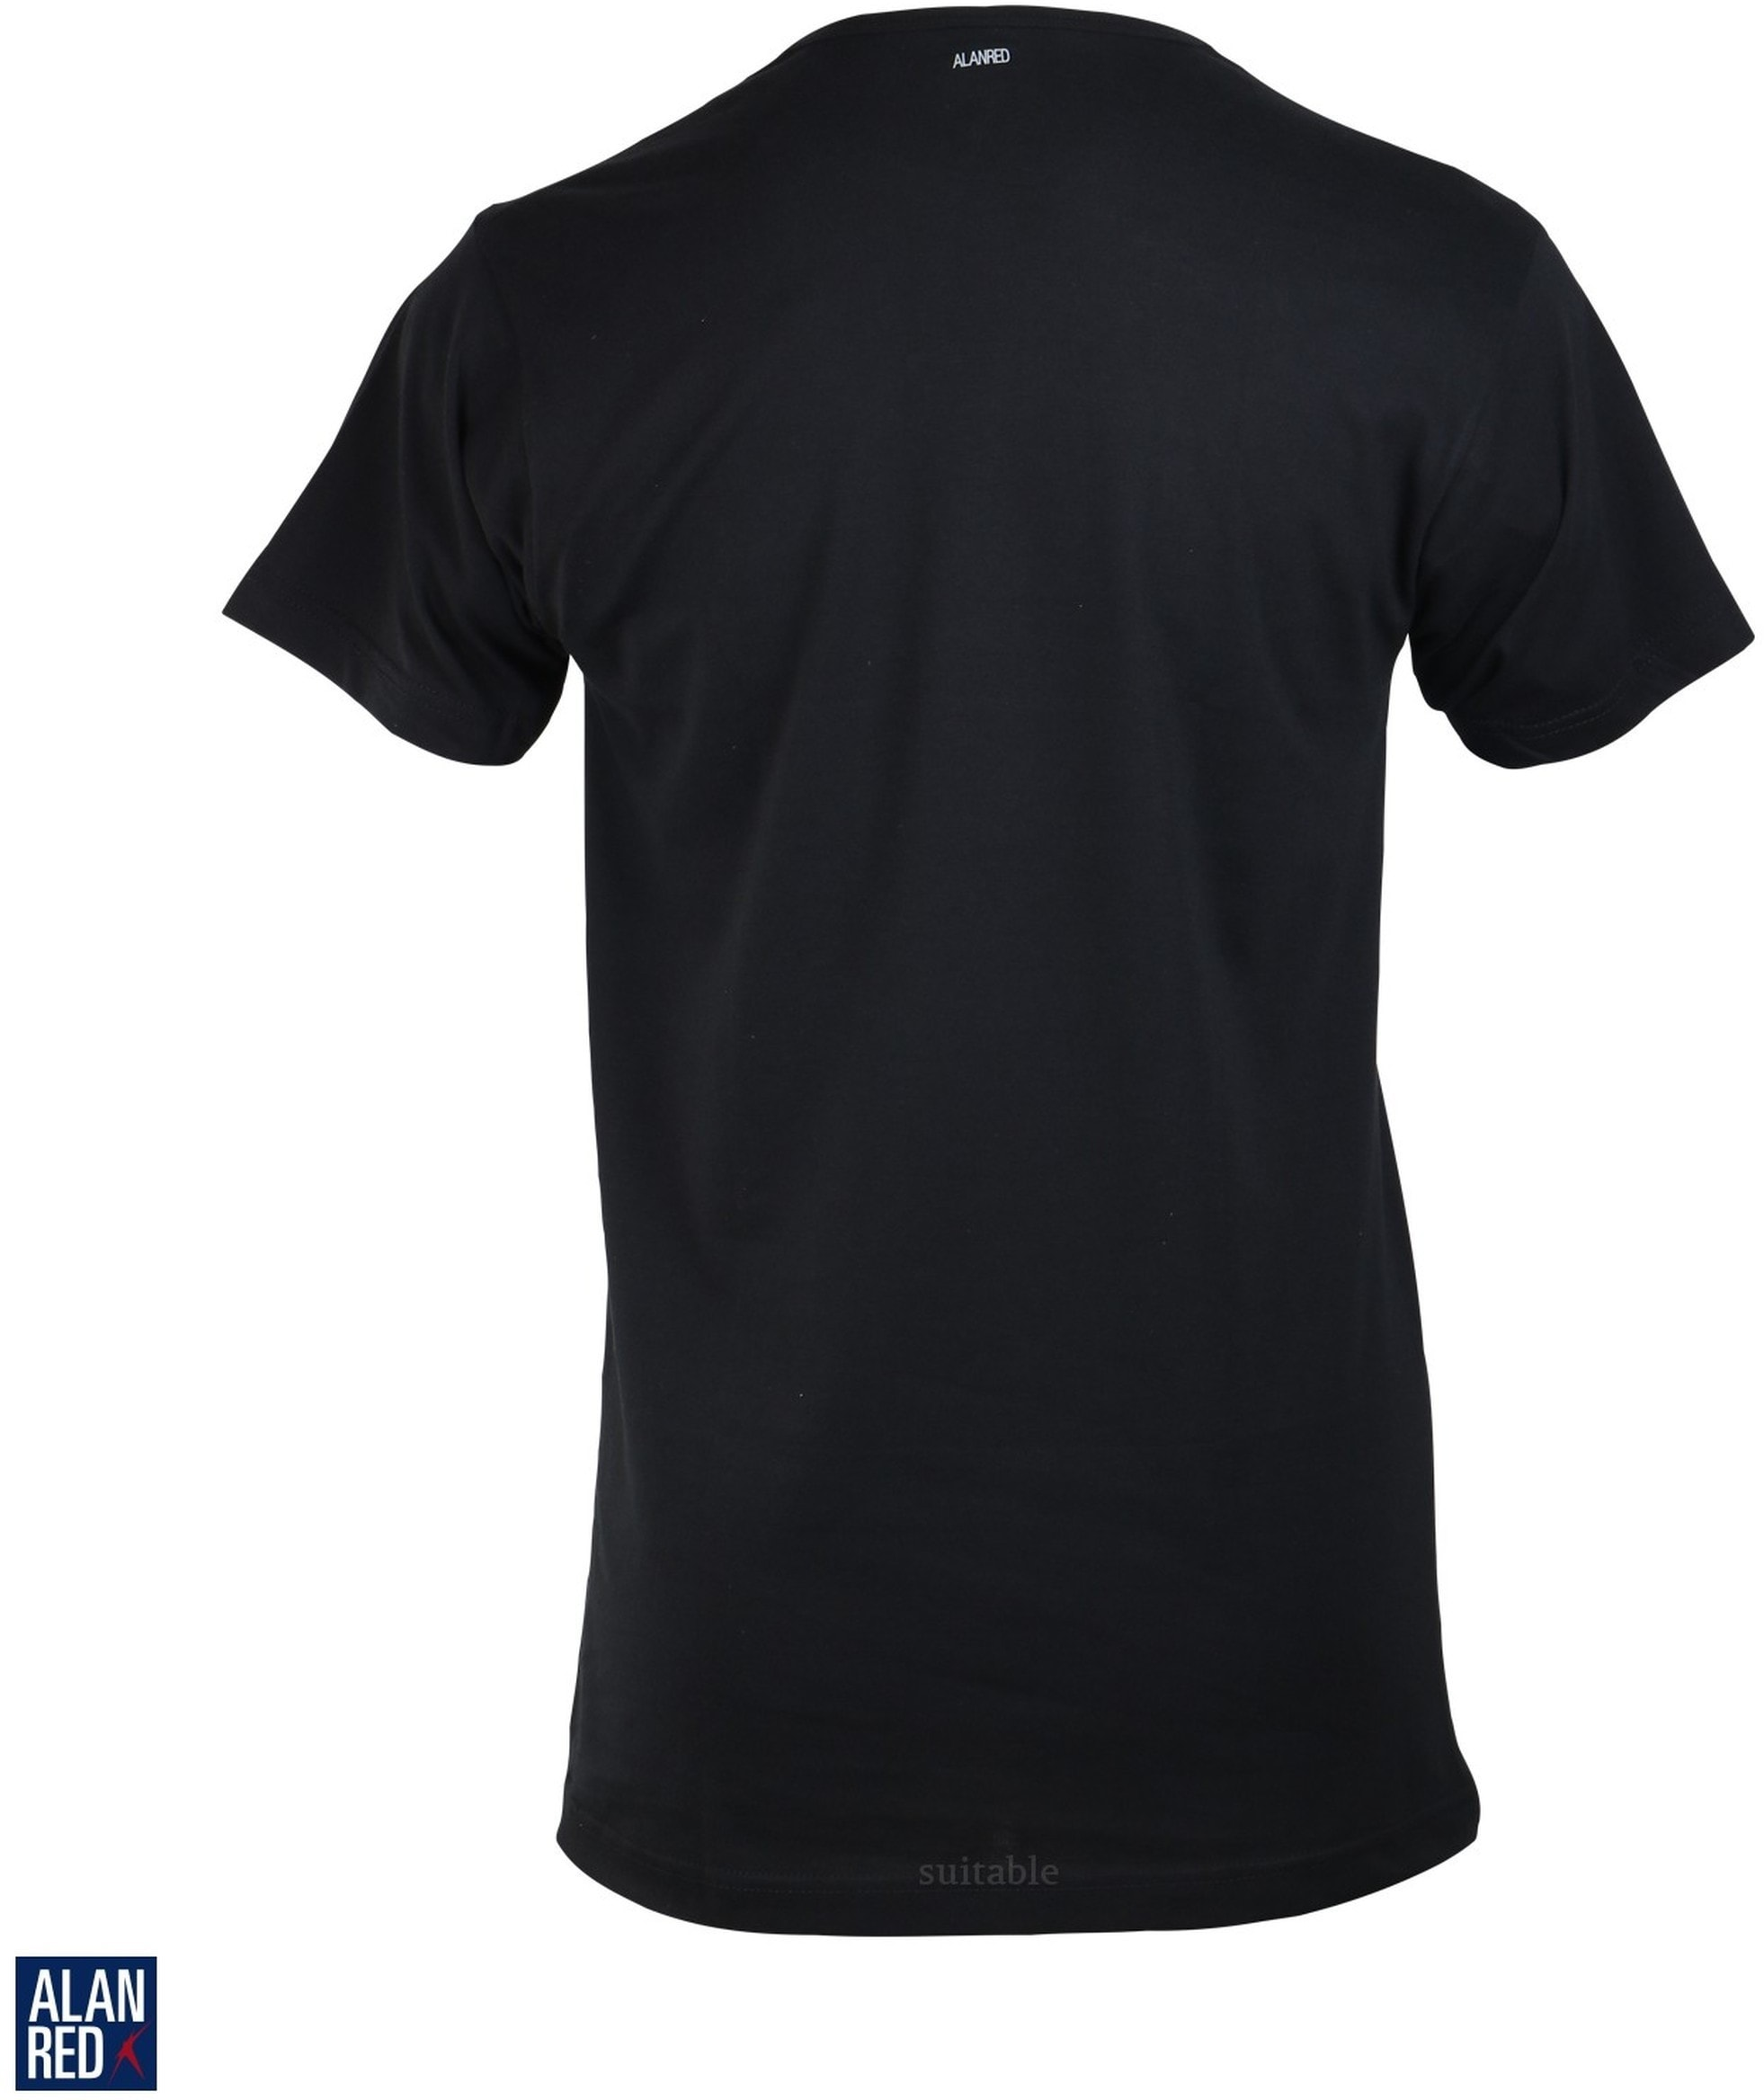 Alan Red Derby O-Hals T-Shirt Zwart (1Pack) foto 2